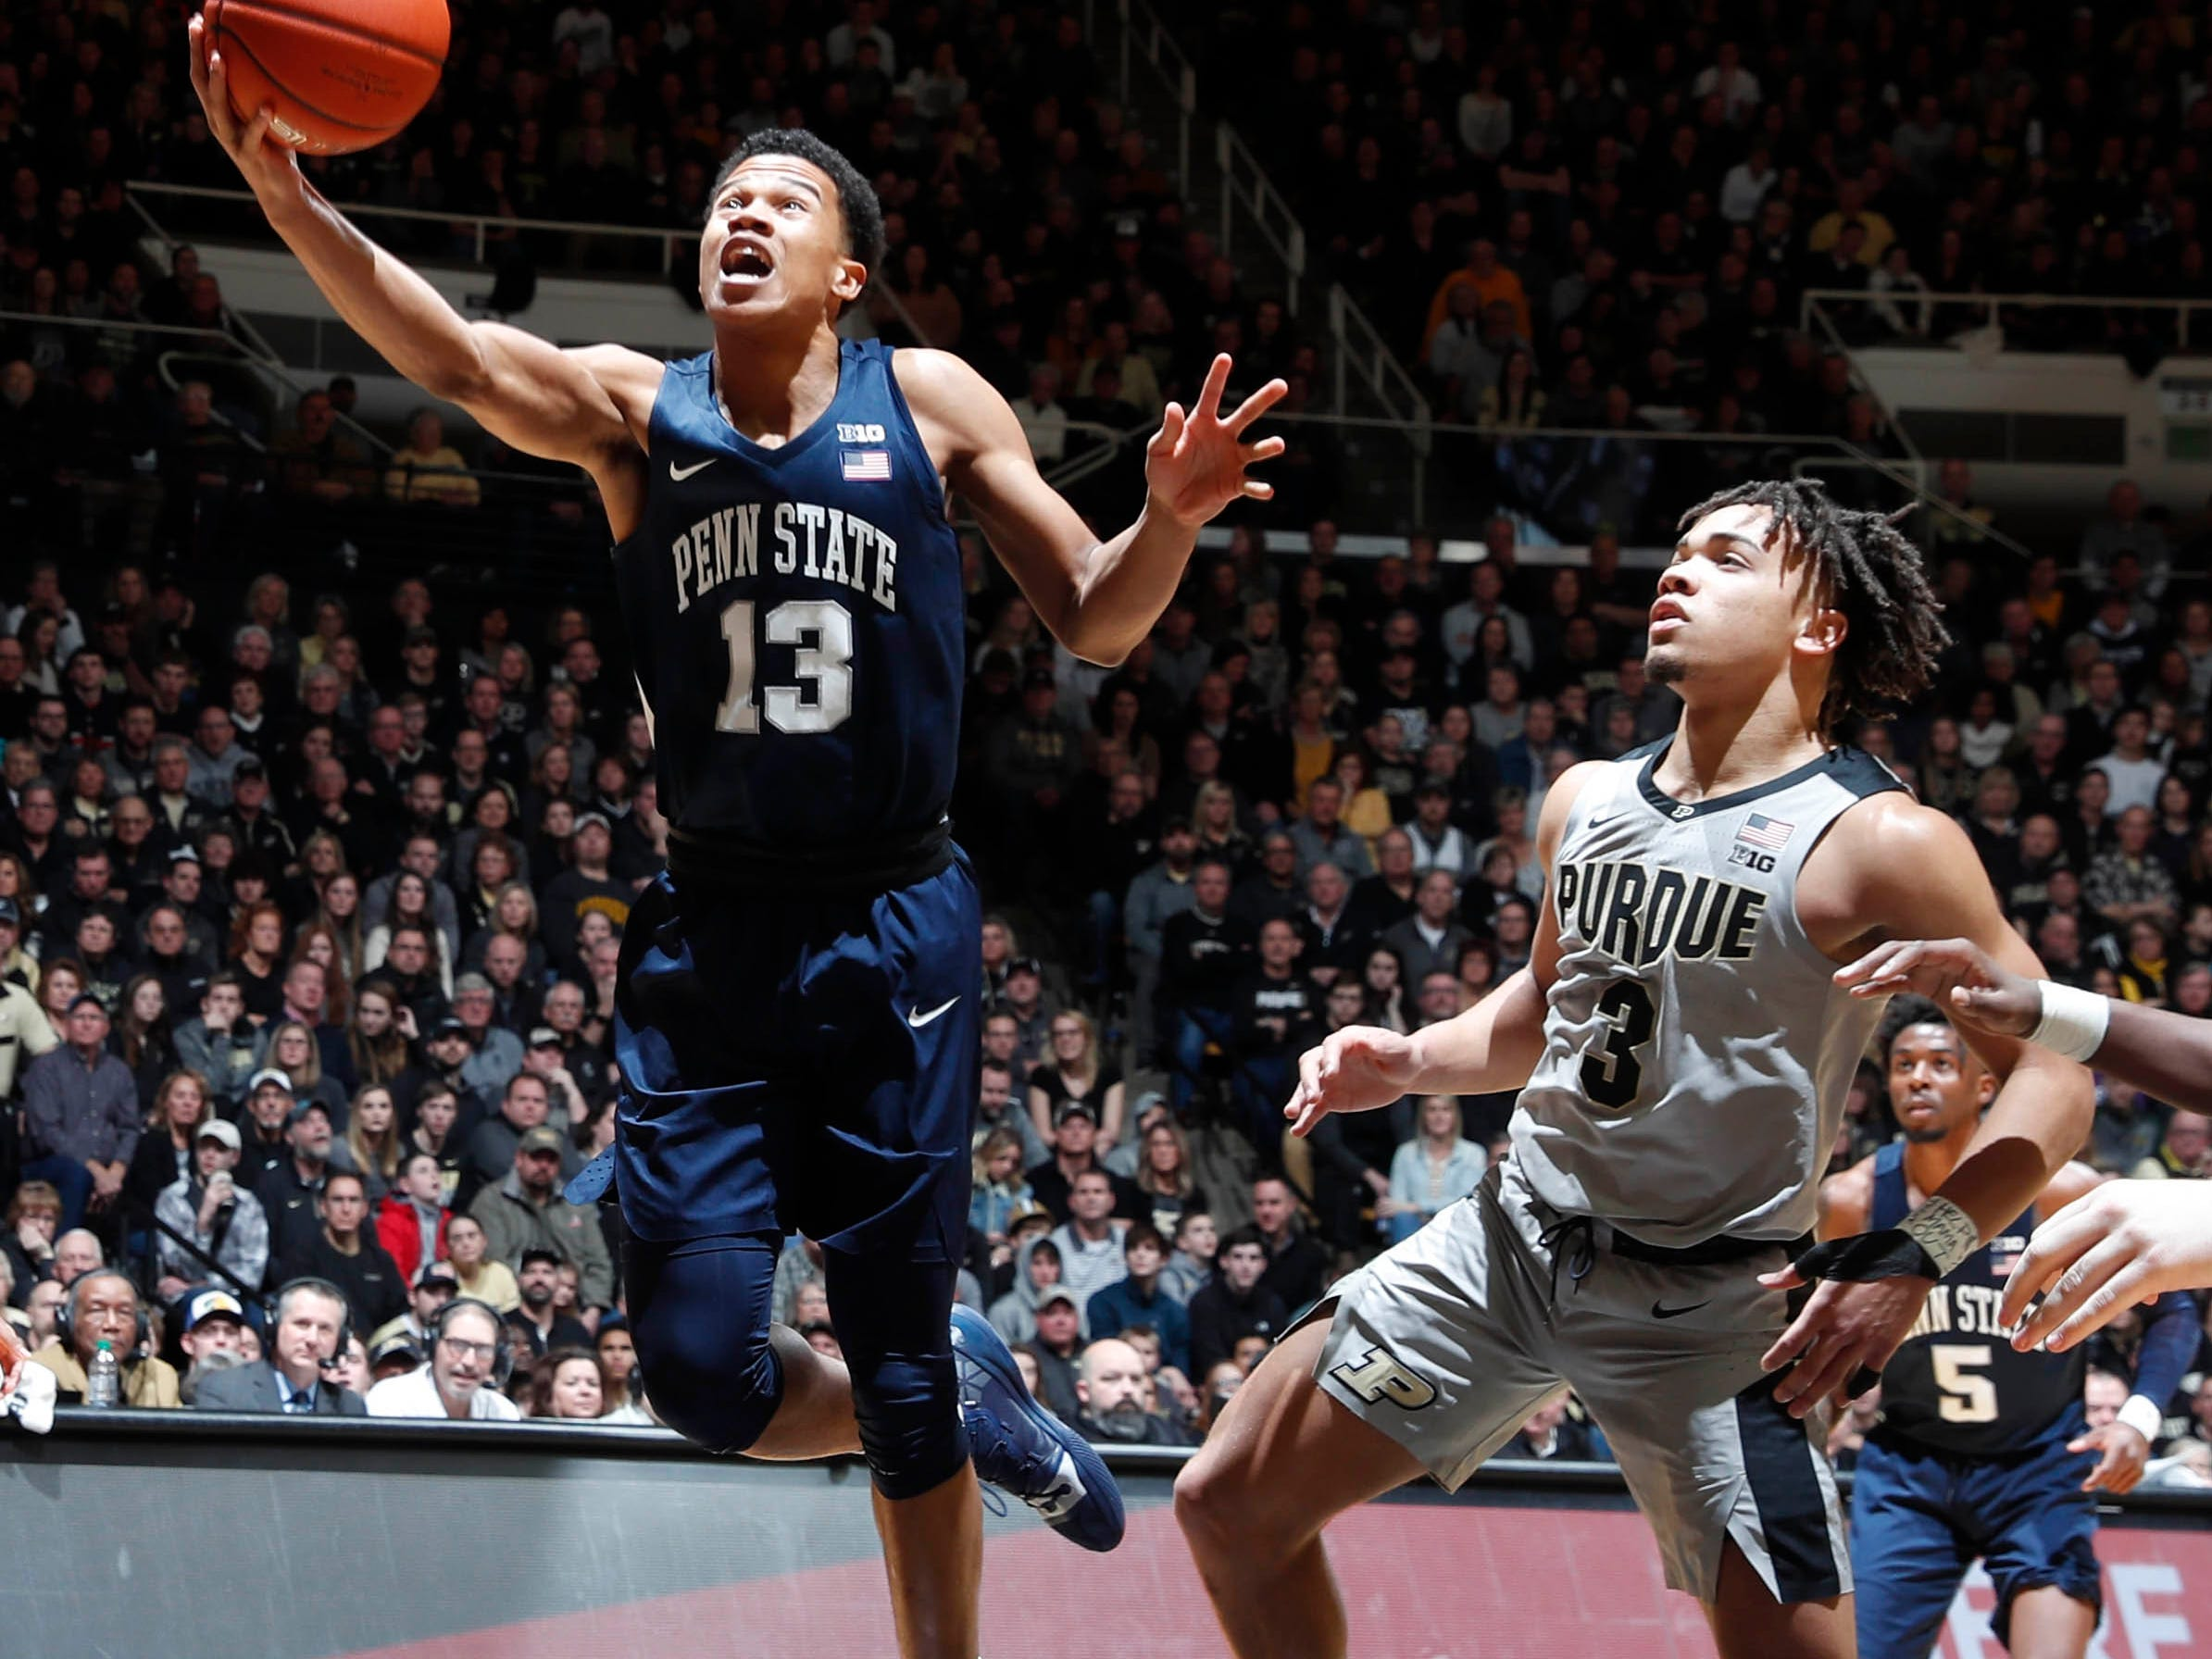 Penn State Nittany Lions Rasir Bolton (13) takes a shot against Purdue Boilermakers guard Carsen Edwards (3) during the first half at Mackey Arena.